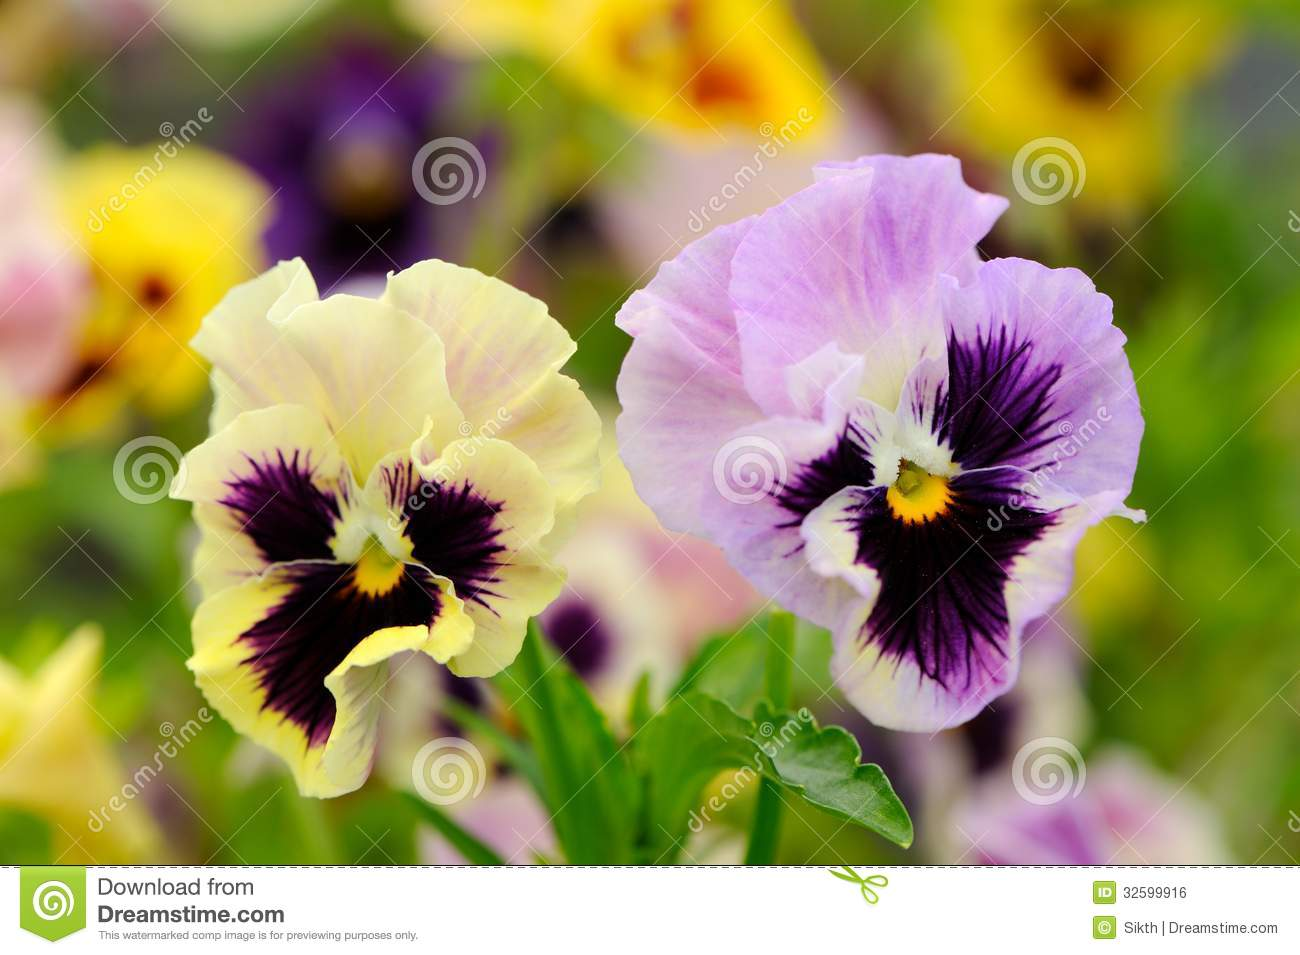 ... purple pansy violet (Viola tricolor) flowers growing on a flower bed